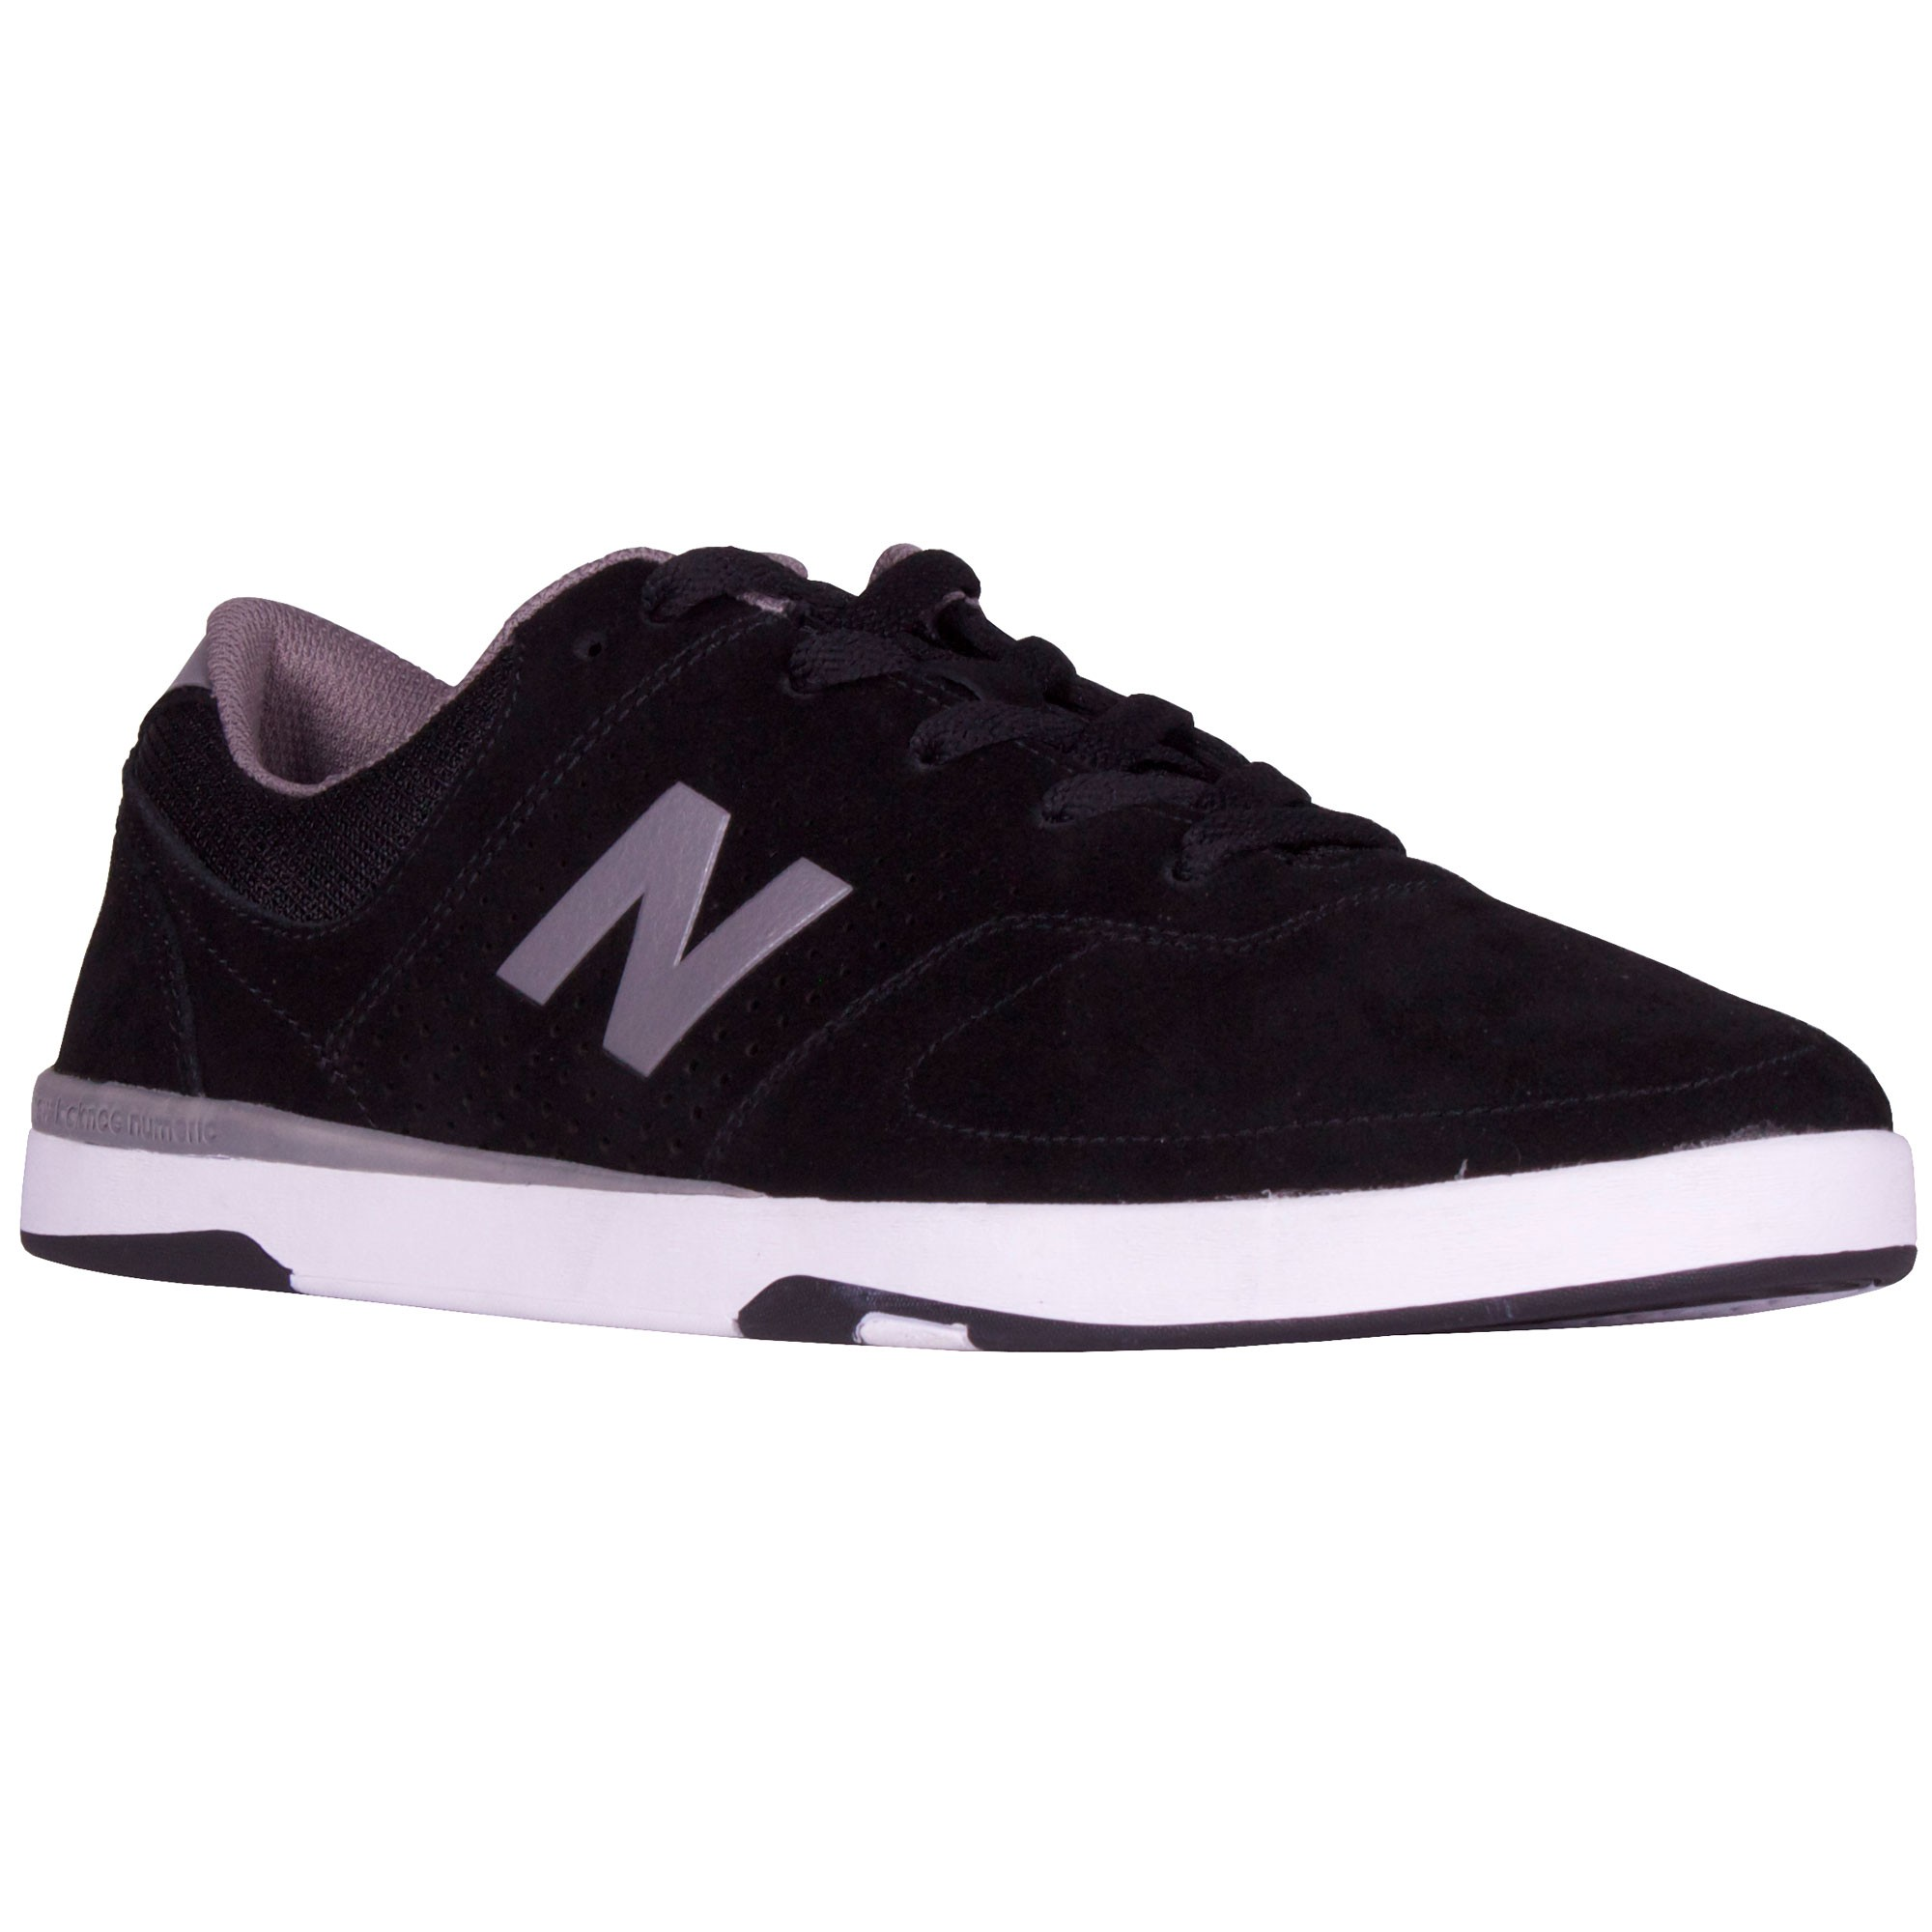 New Balance Stratford 479 Shoes - Black/Micro Grey - 9.5